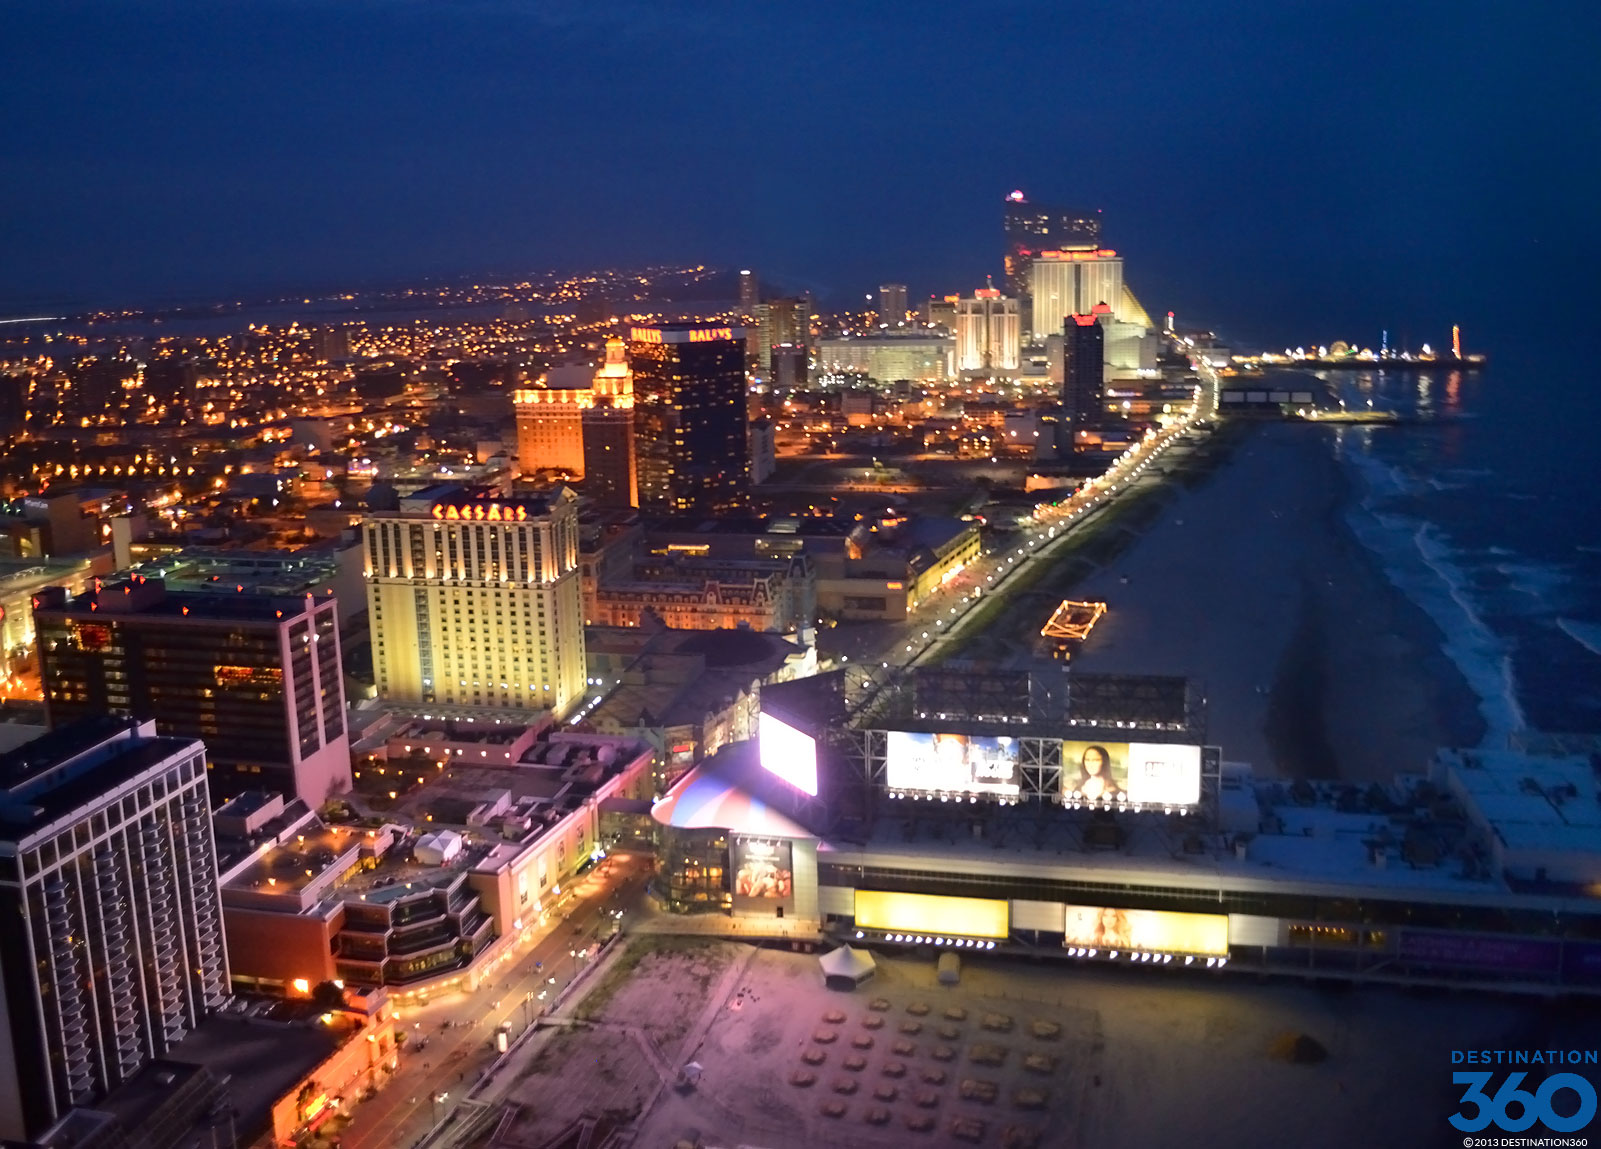 Best deals on Atlantic City hotels The best deals for Atlantic City hotels are here at ferricd.cf Find out how much you can save! Enter your travel dates and check on our hotel deals online.